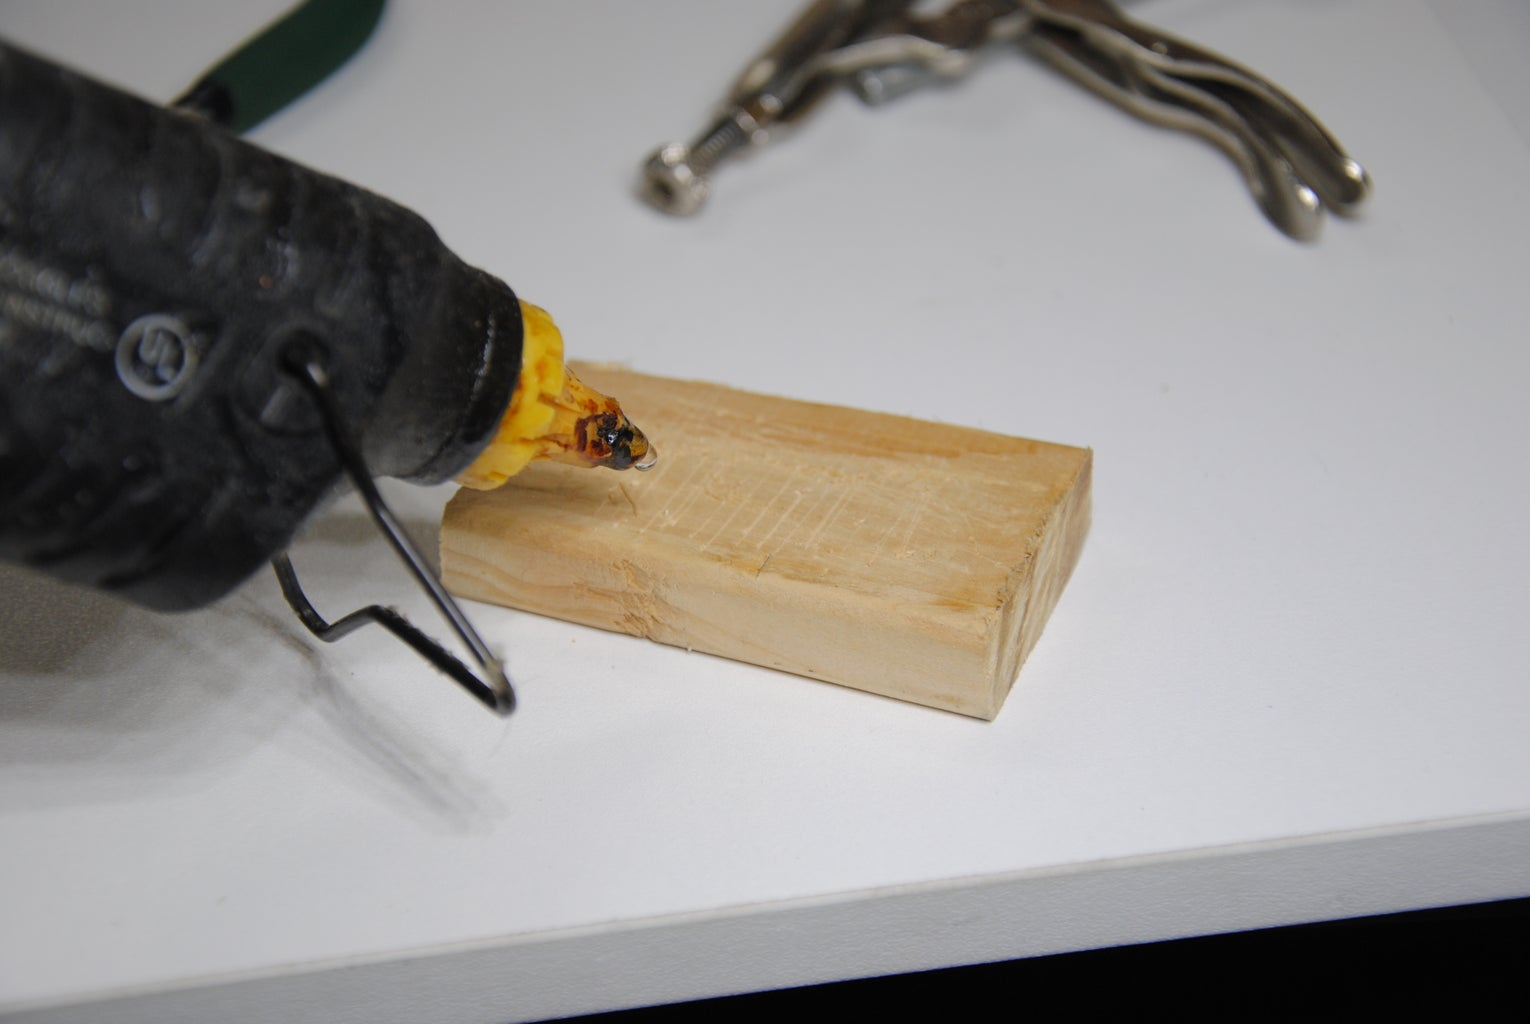 Glue the Wooden Pad Onto the Hammer